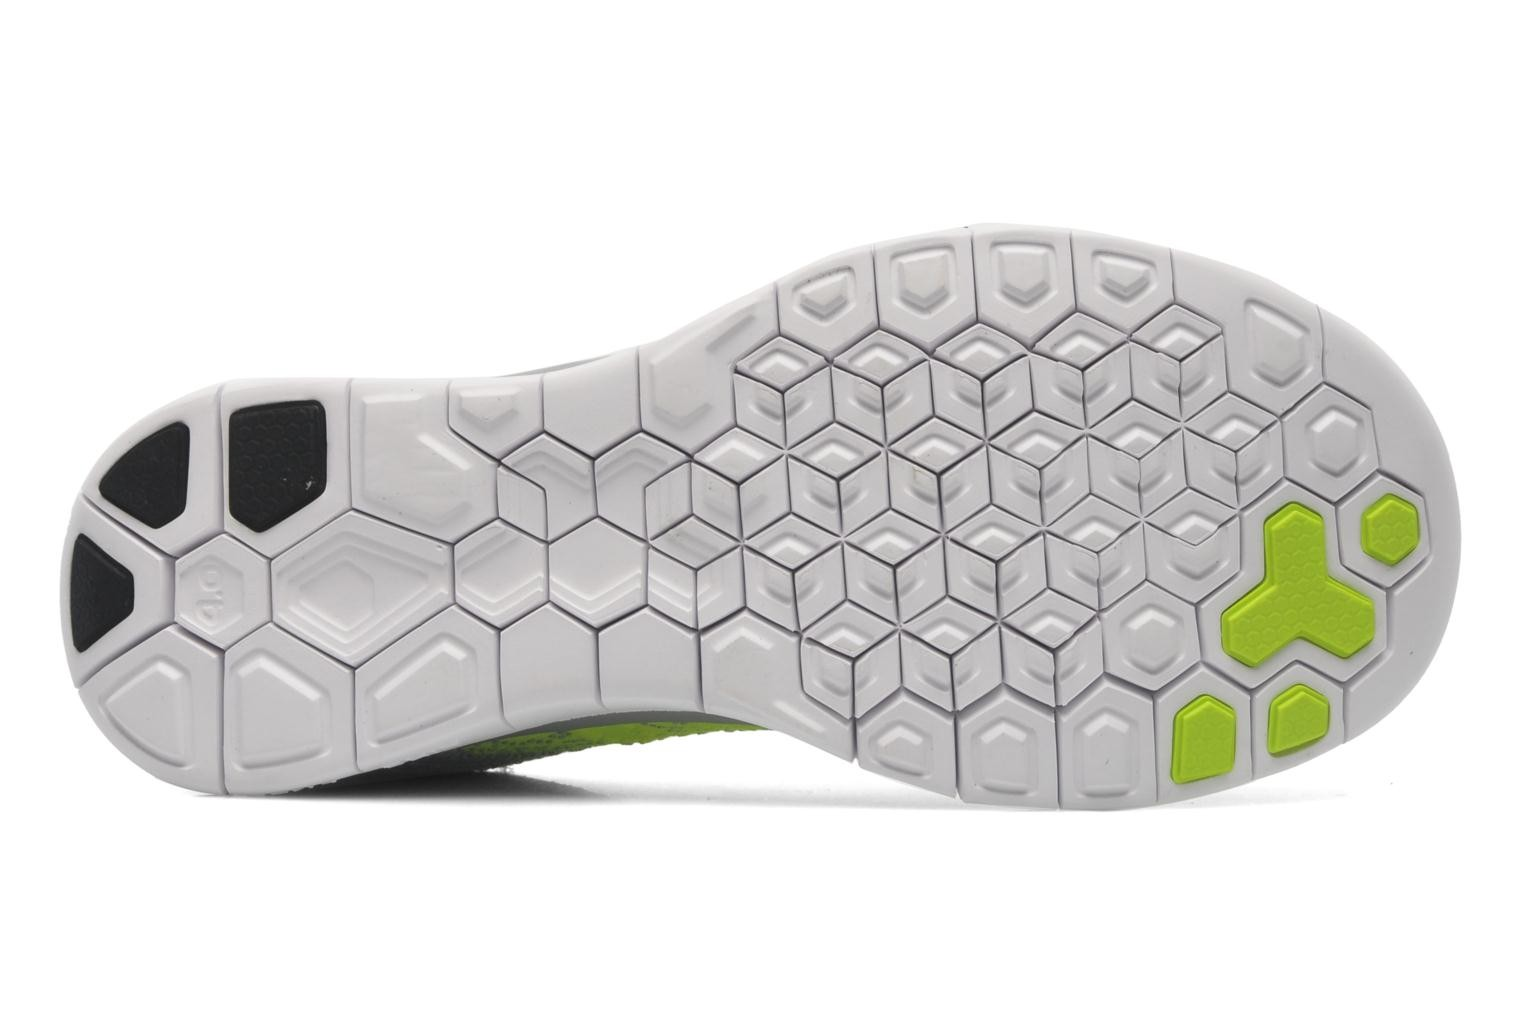 ... Nike Free 4.0 Flyknit Wolf Grey/Black-Volt-White Men\u0027s Running Shoes ...